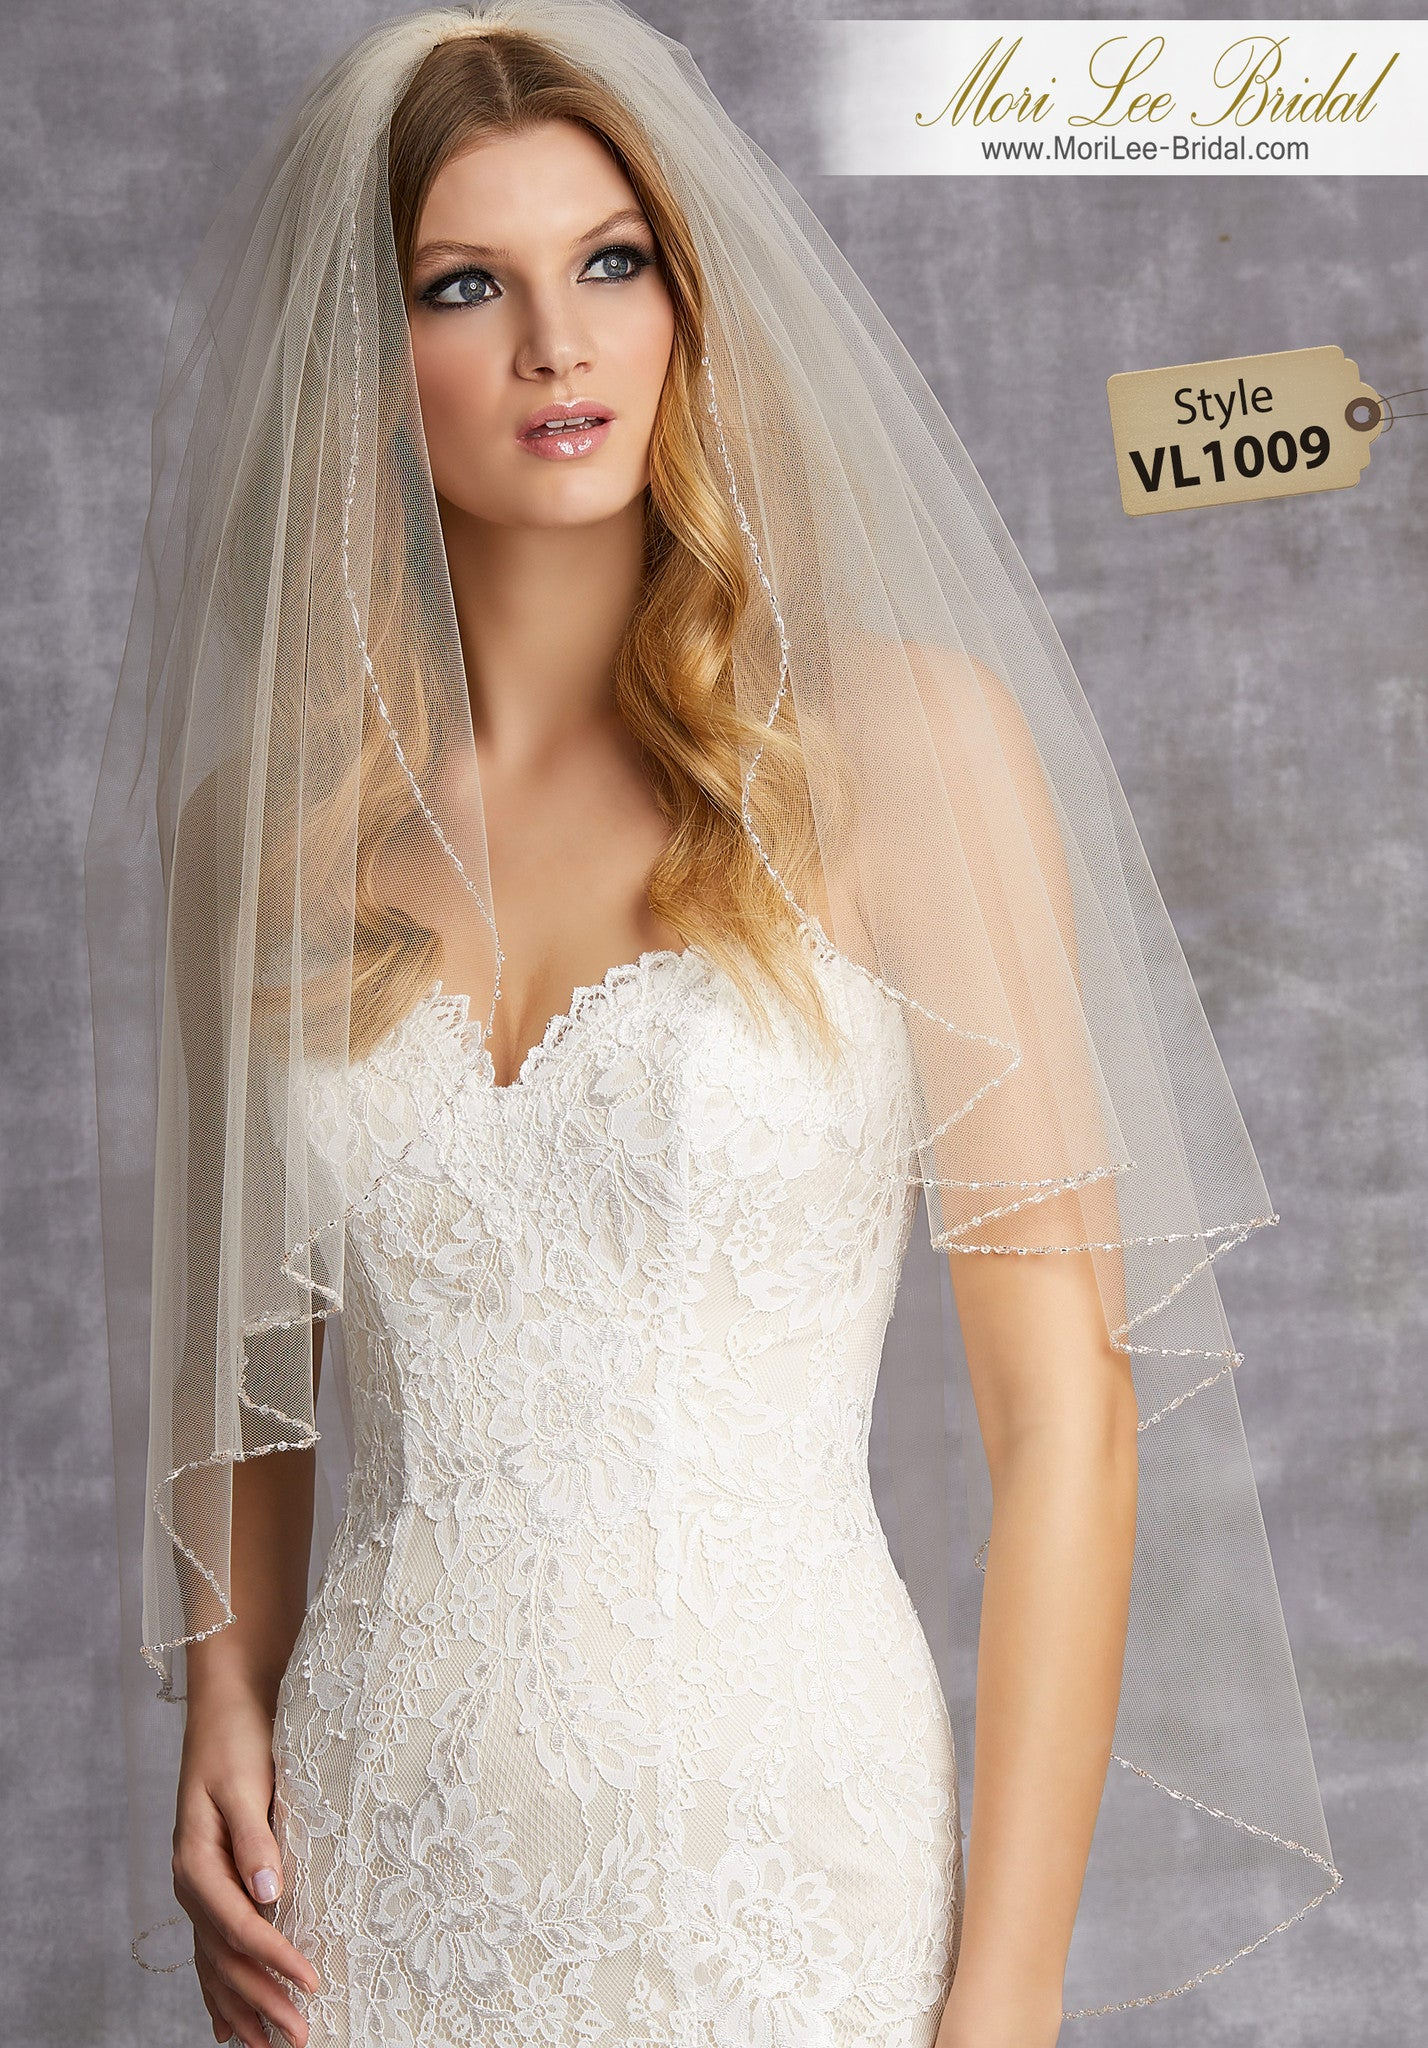 VL1009F - Mori Lee Bridal